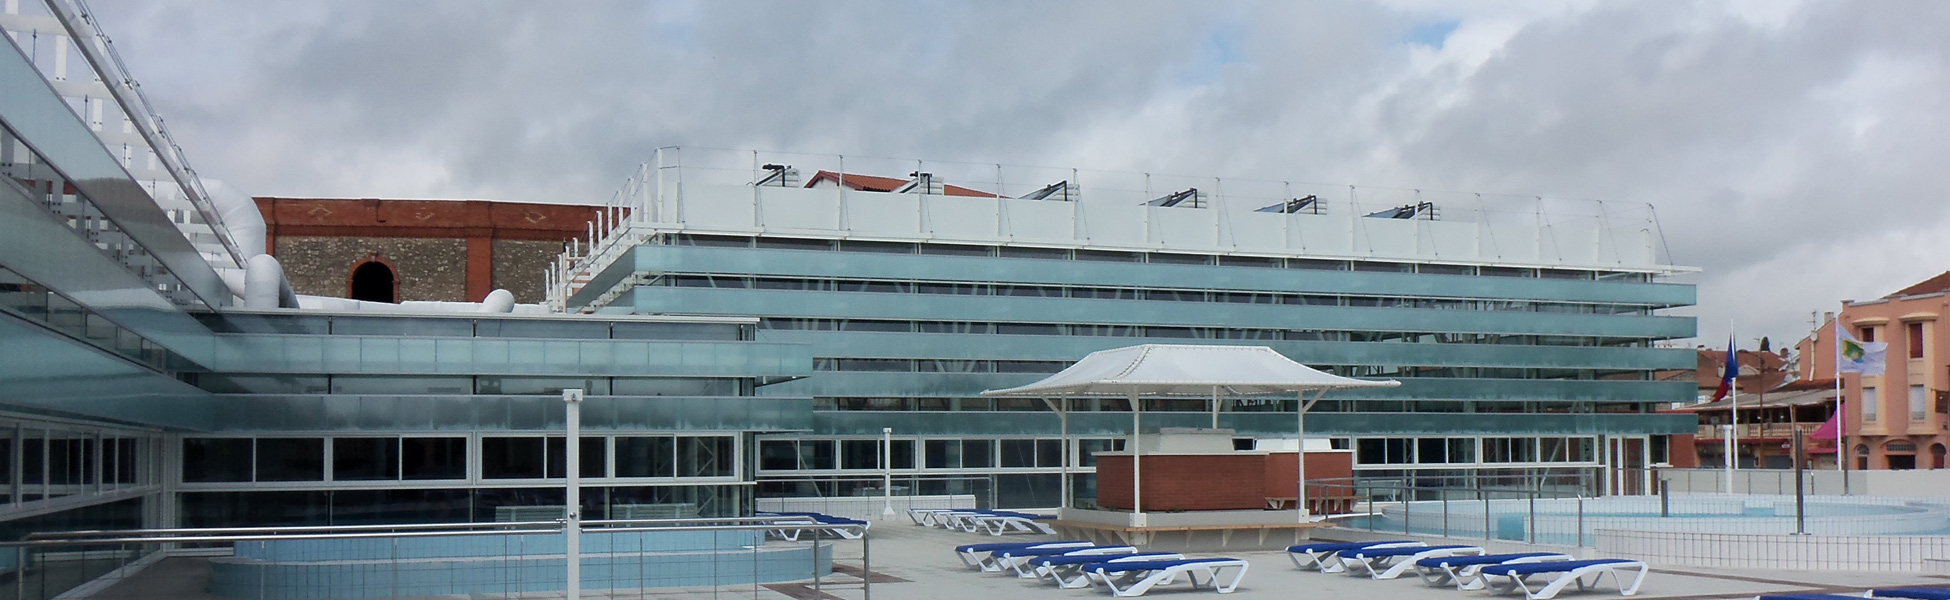 Ozeo piscine beziers 20171021215529 for Piscine leo lagrange